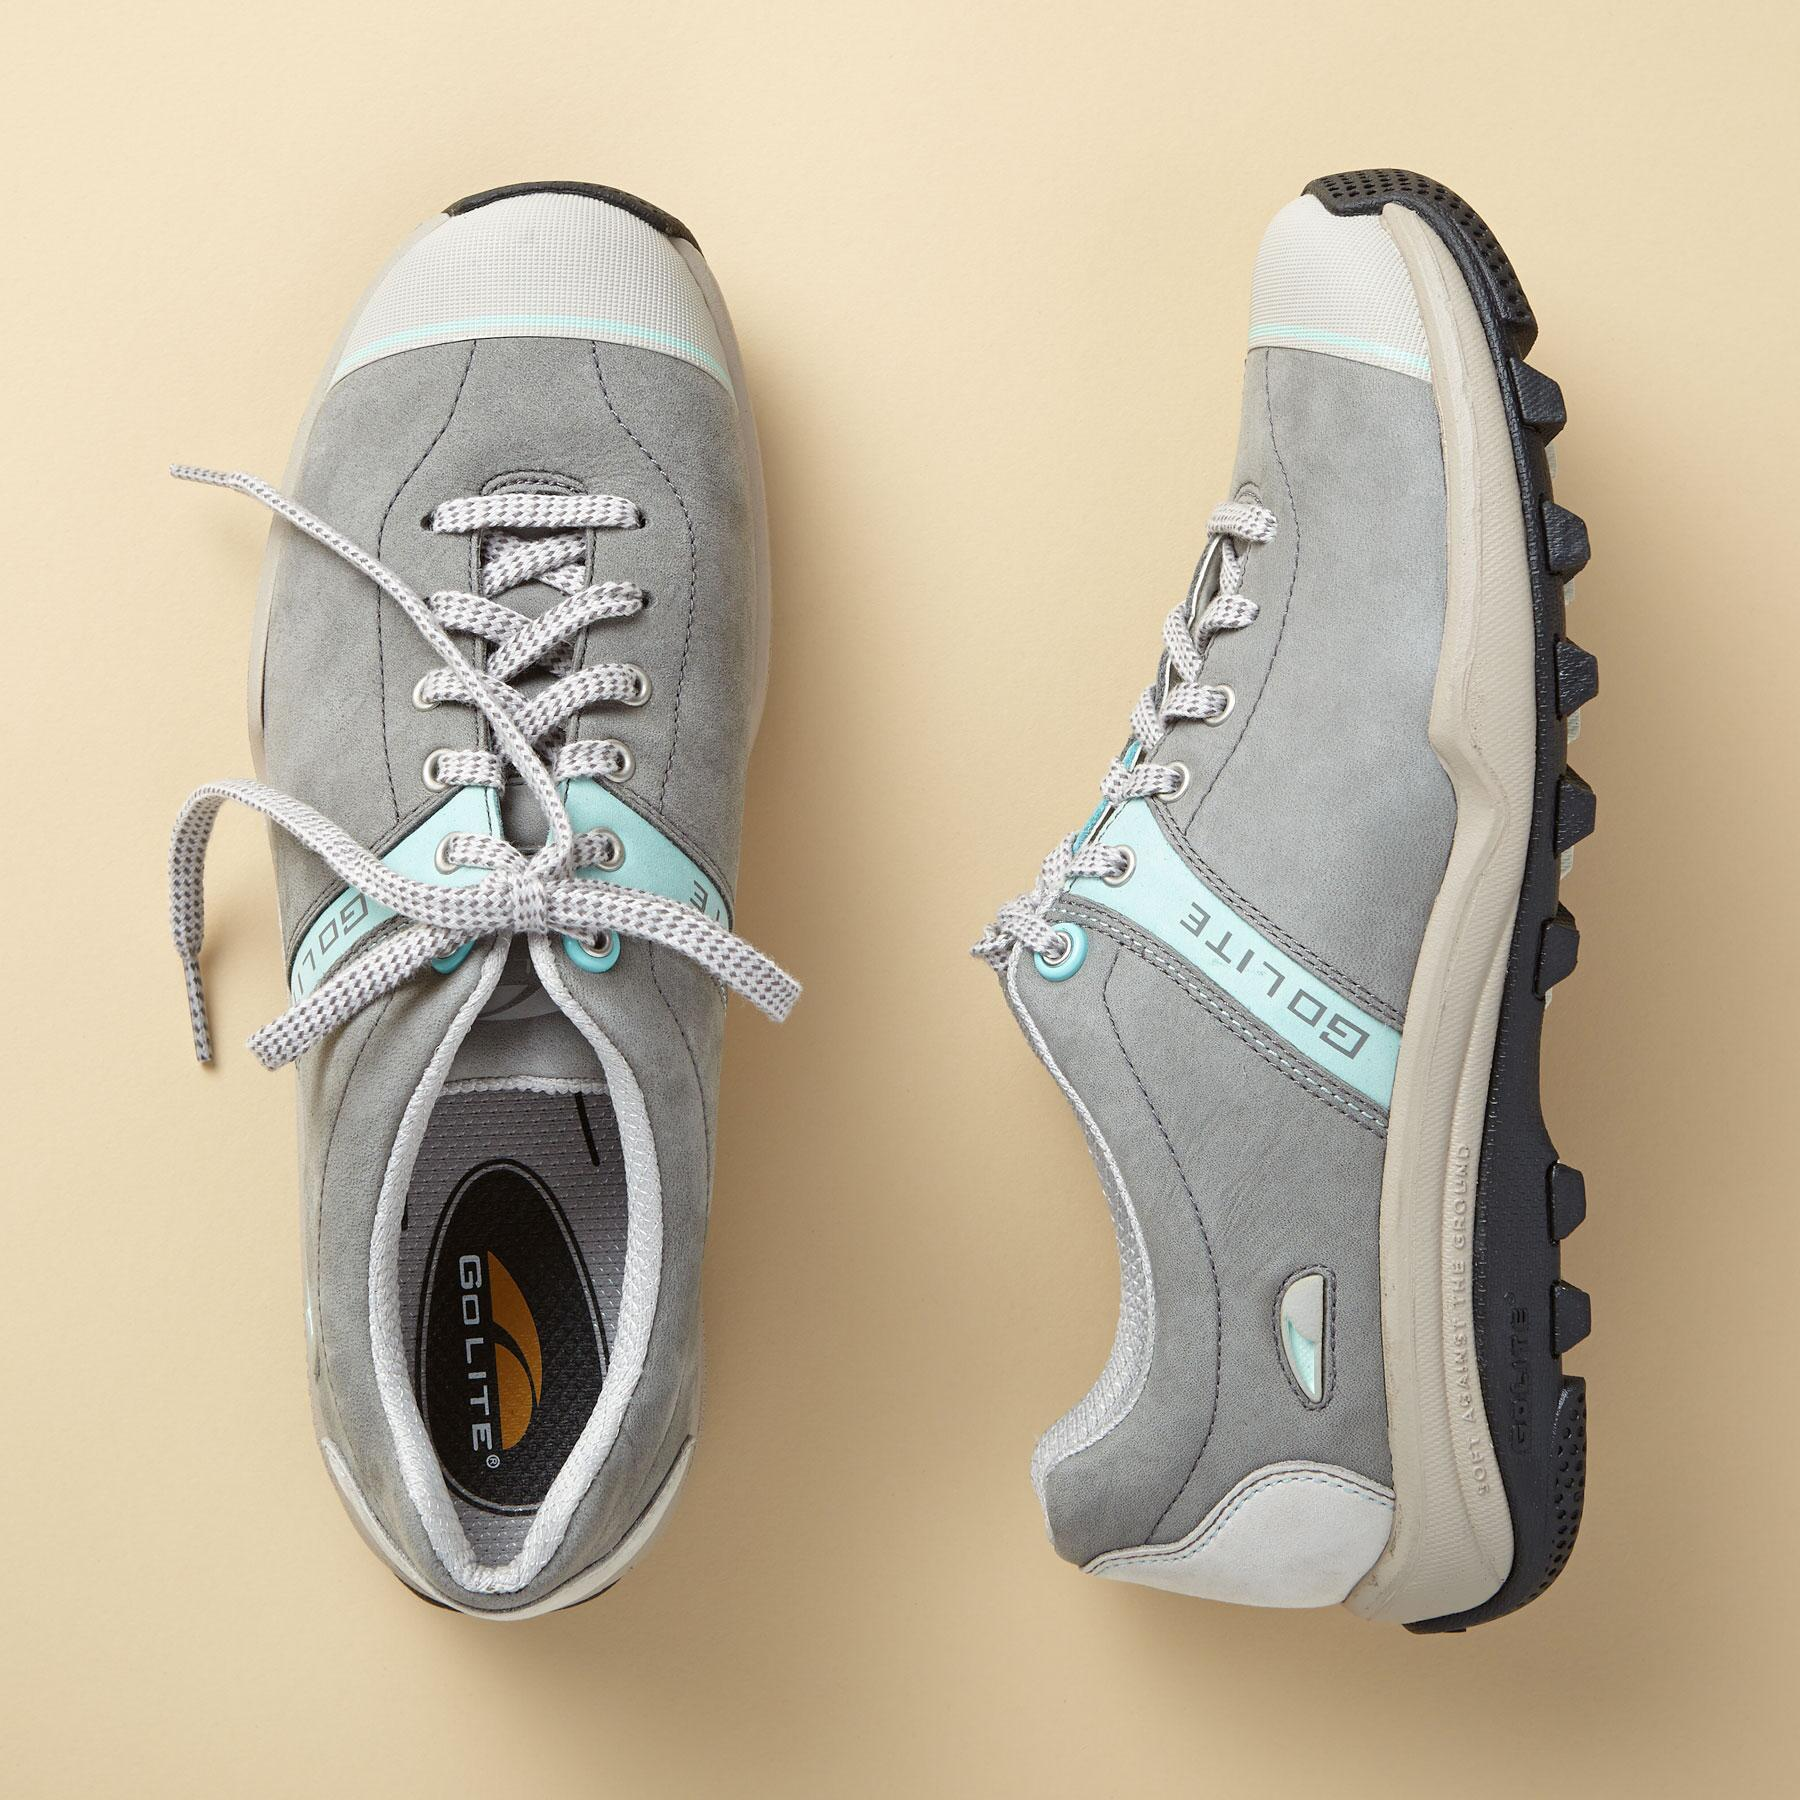 Mission Lite Sneakers